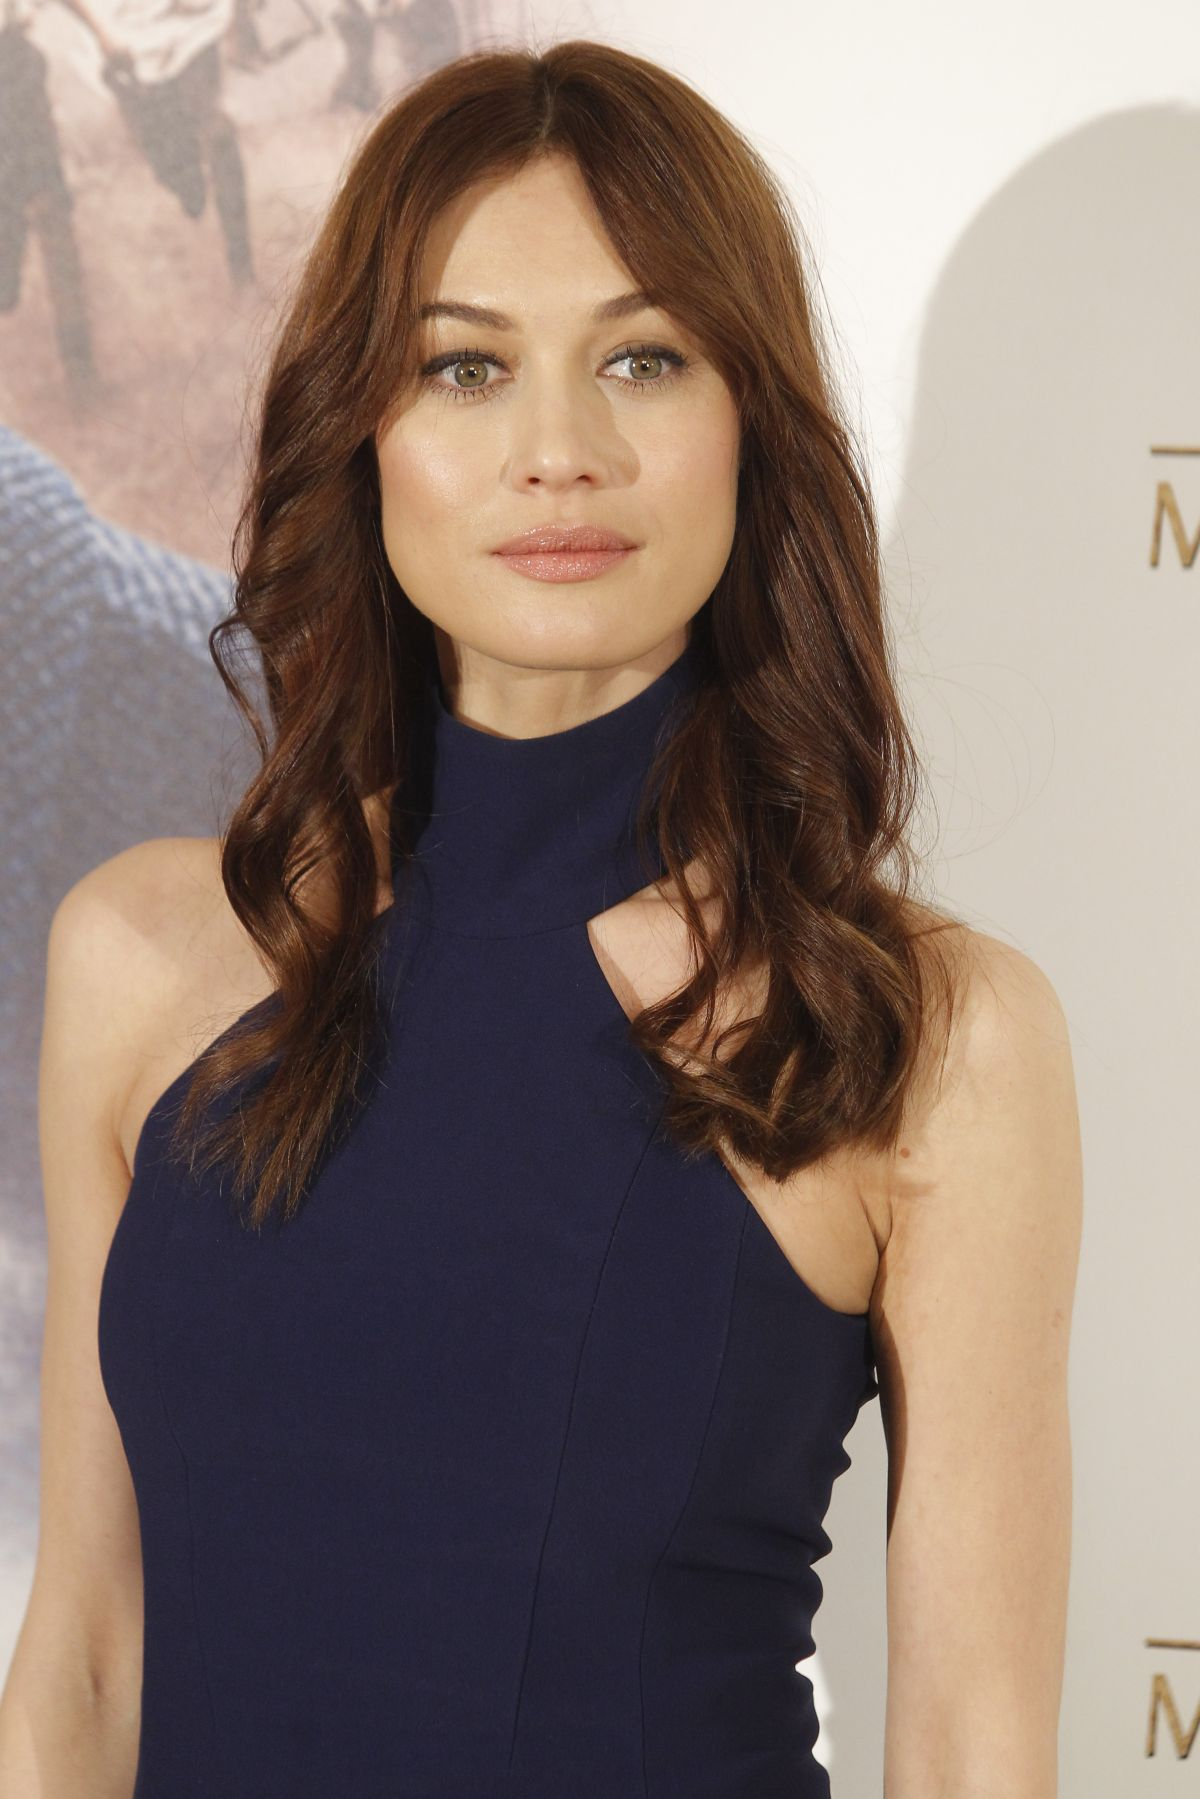 OLGA KURYLENKO at El Maestro Del Agua Photocall in Madrid - HawtCelebs ...